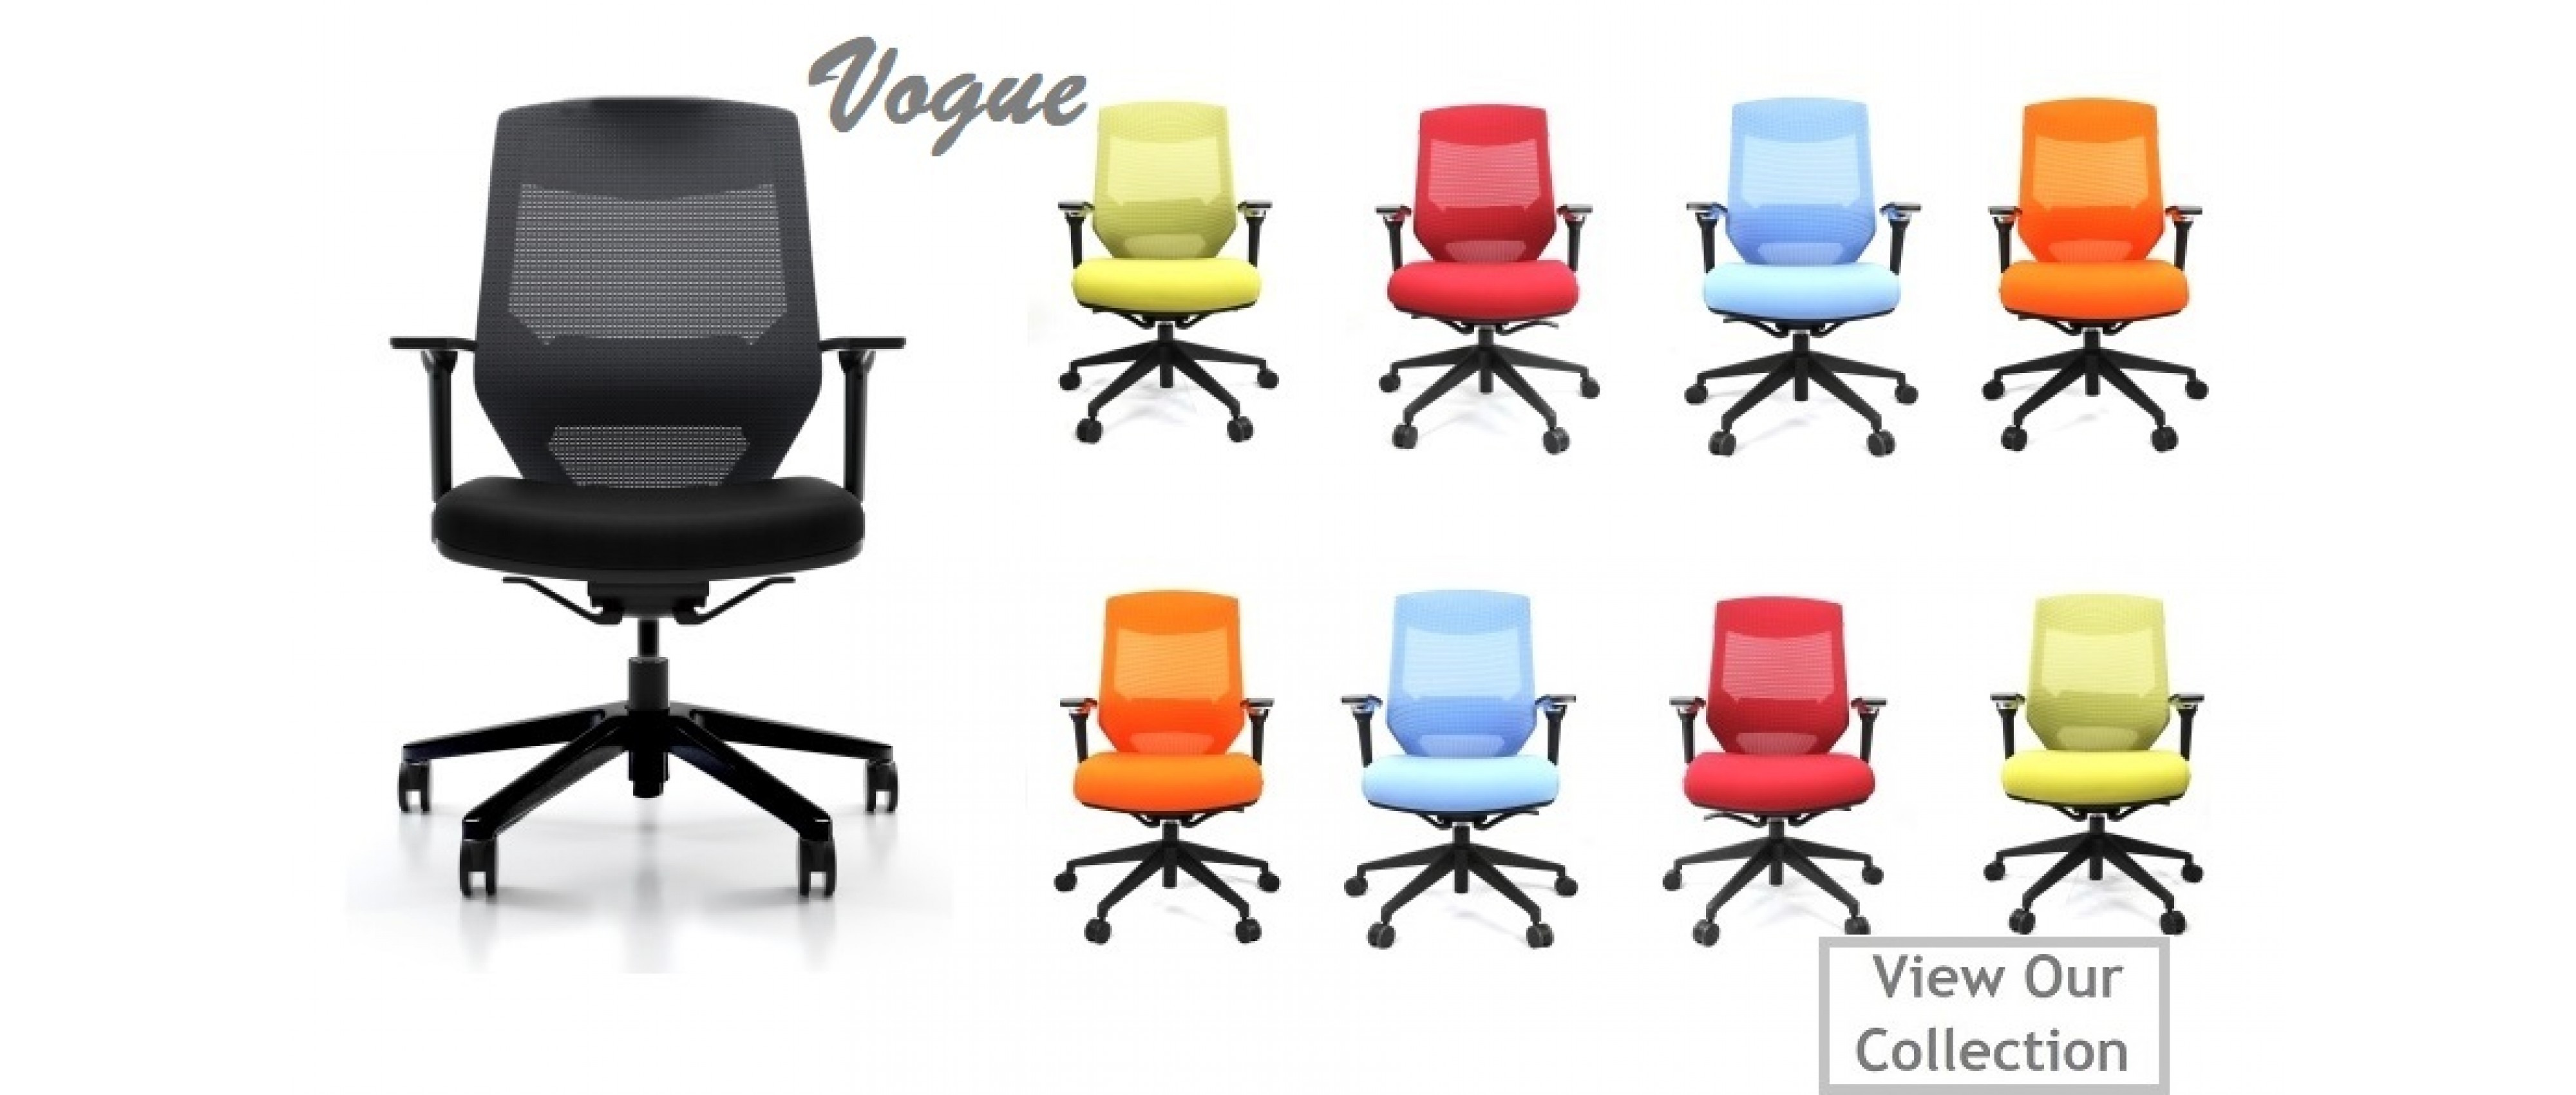 Vogue Chairs